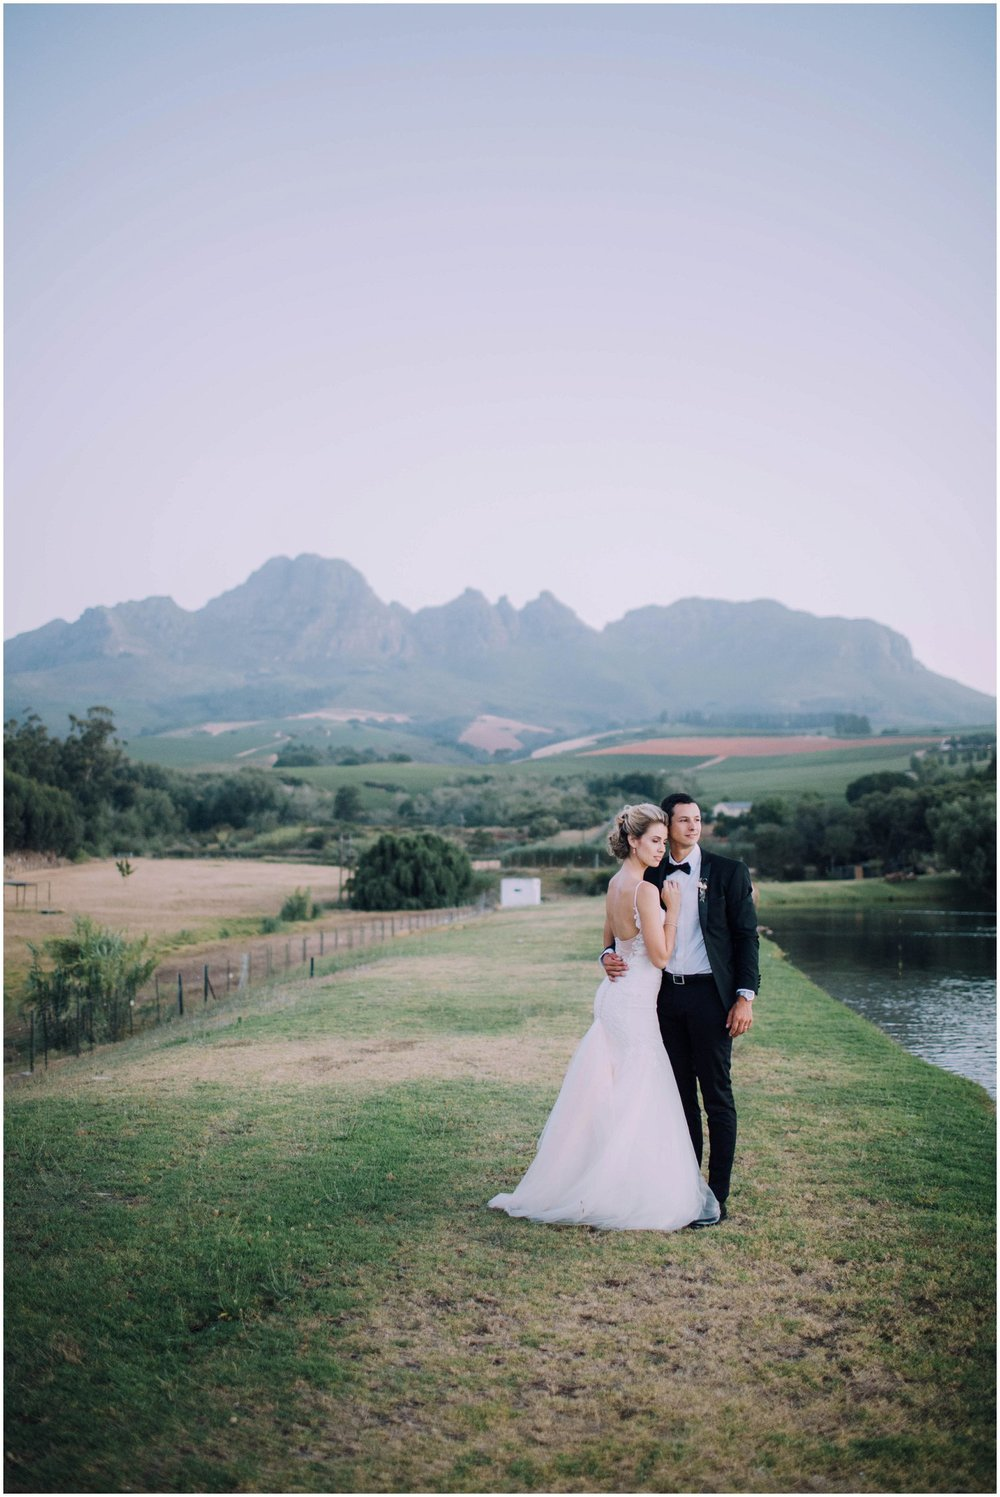 Top Artistic Creative Documentary Wedding Photographer Cape Town South Africa Rue Kruger_0149.jpg